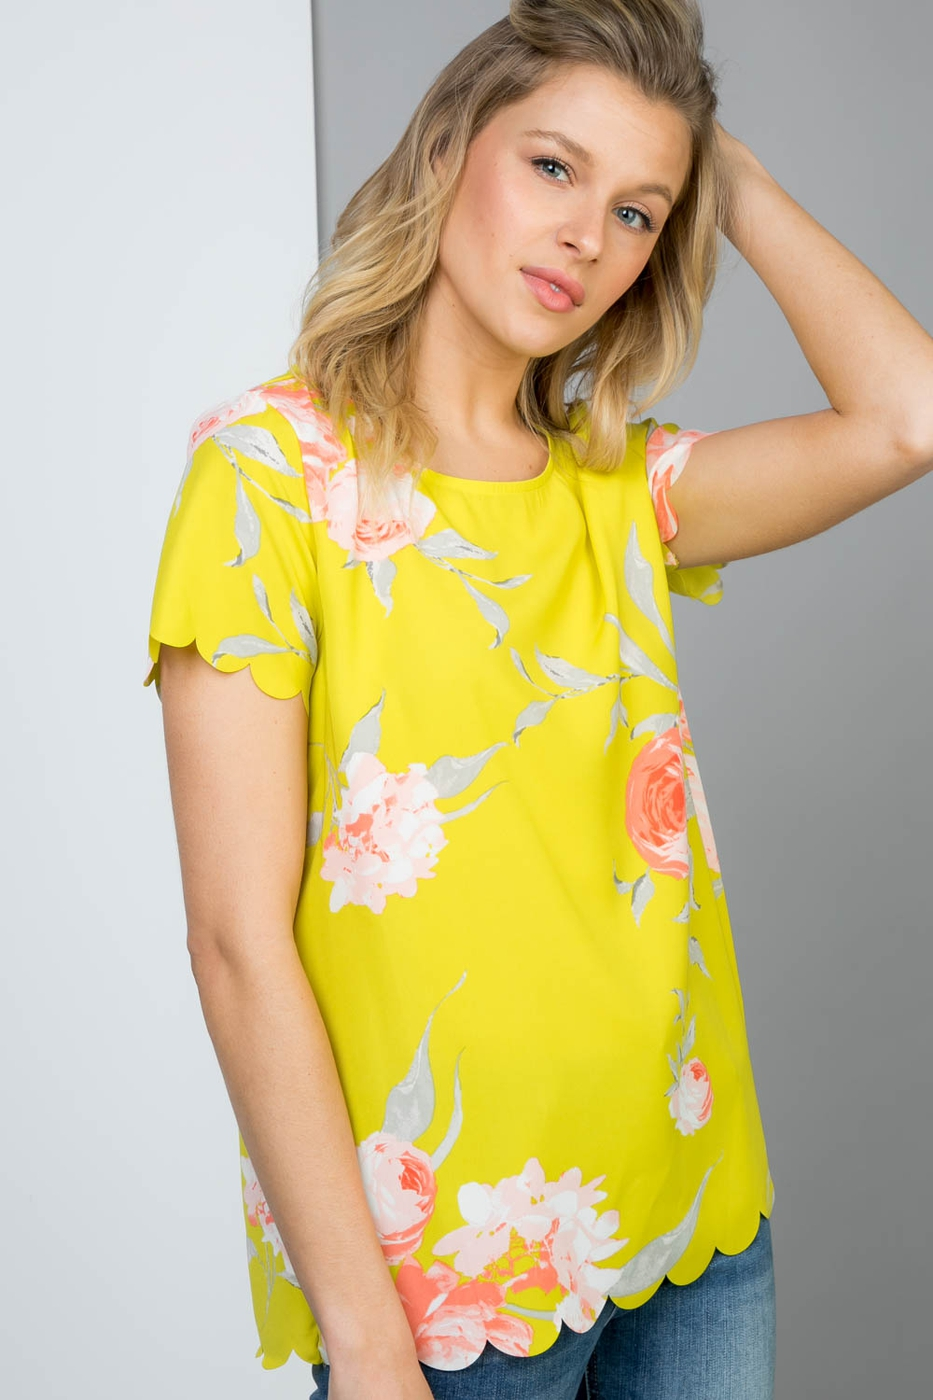 All Over Scallop Tee in Boho Floral - orangeshine.com